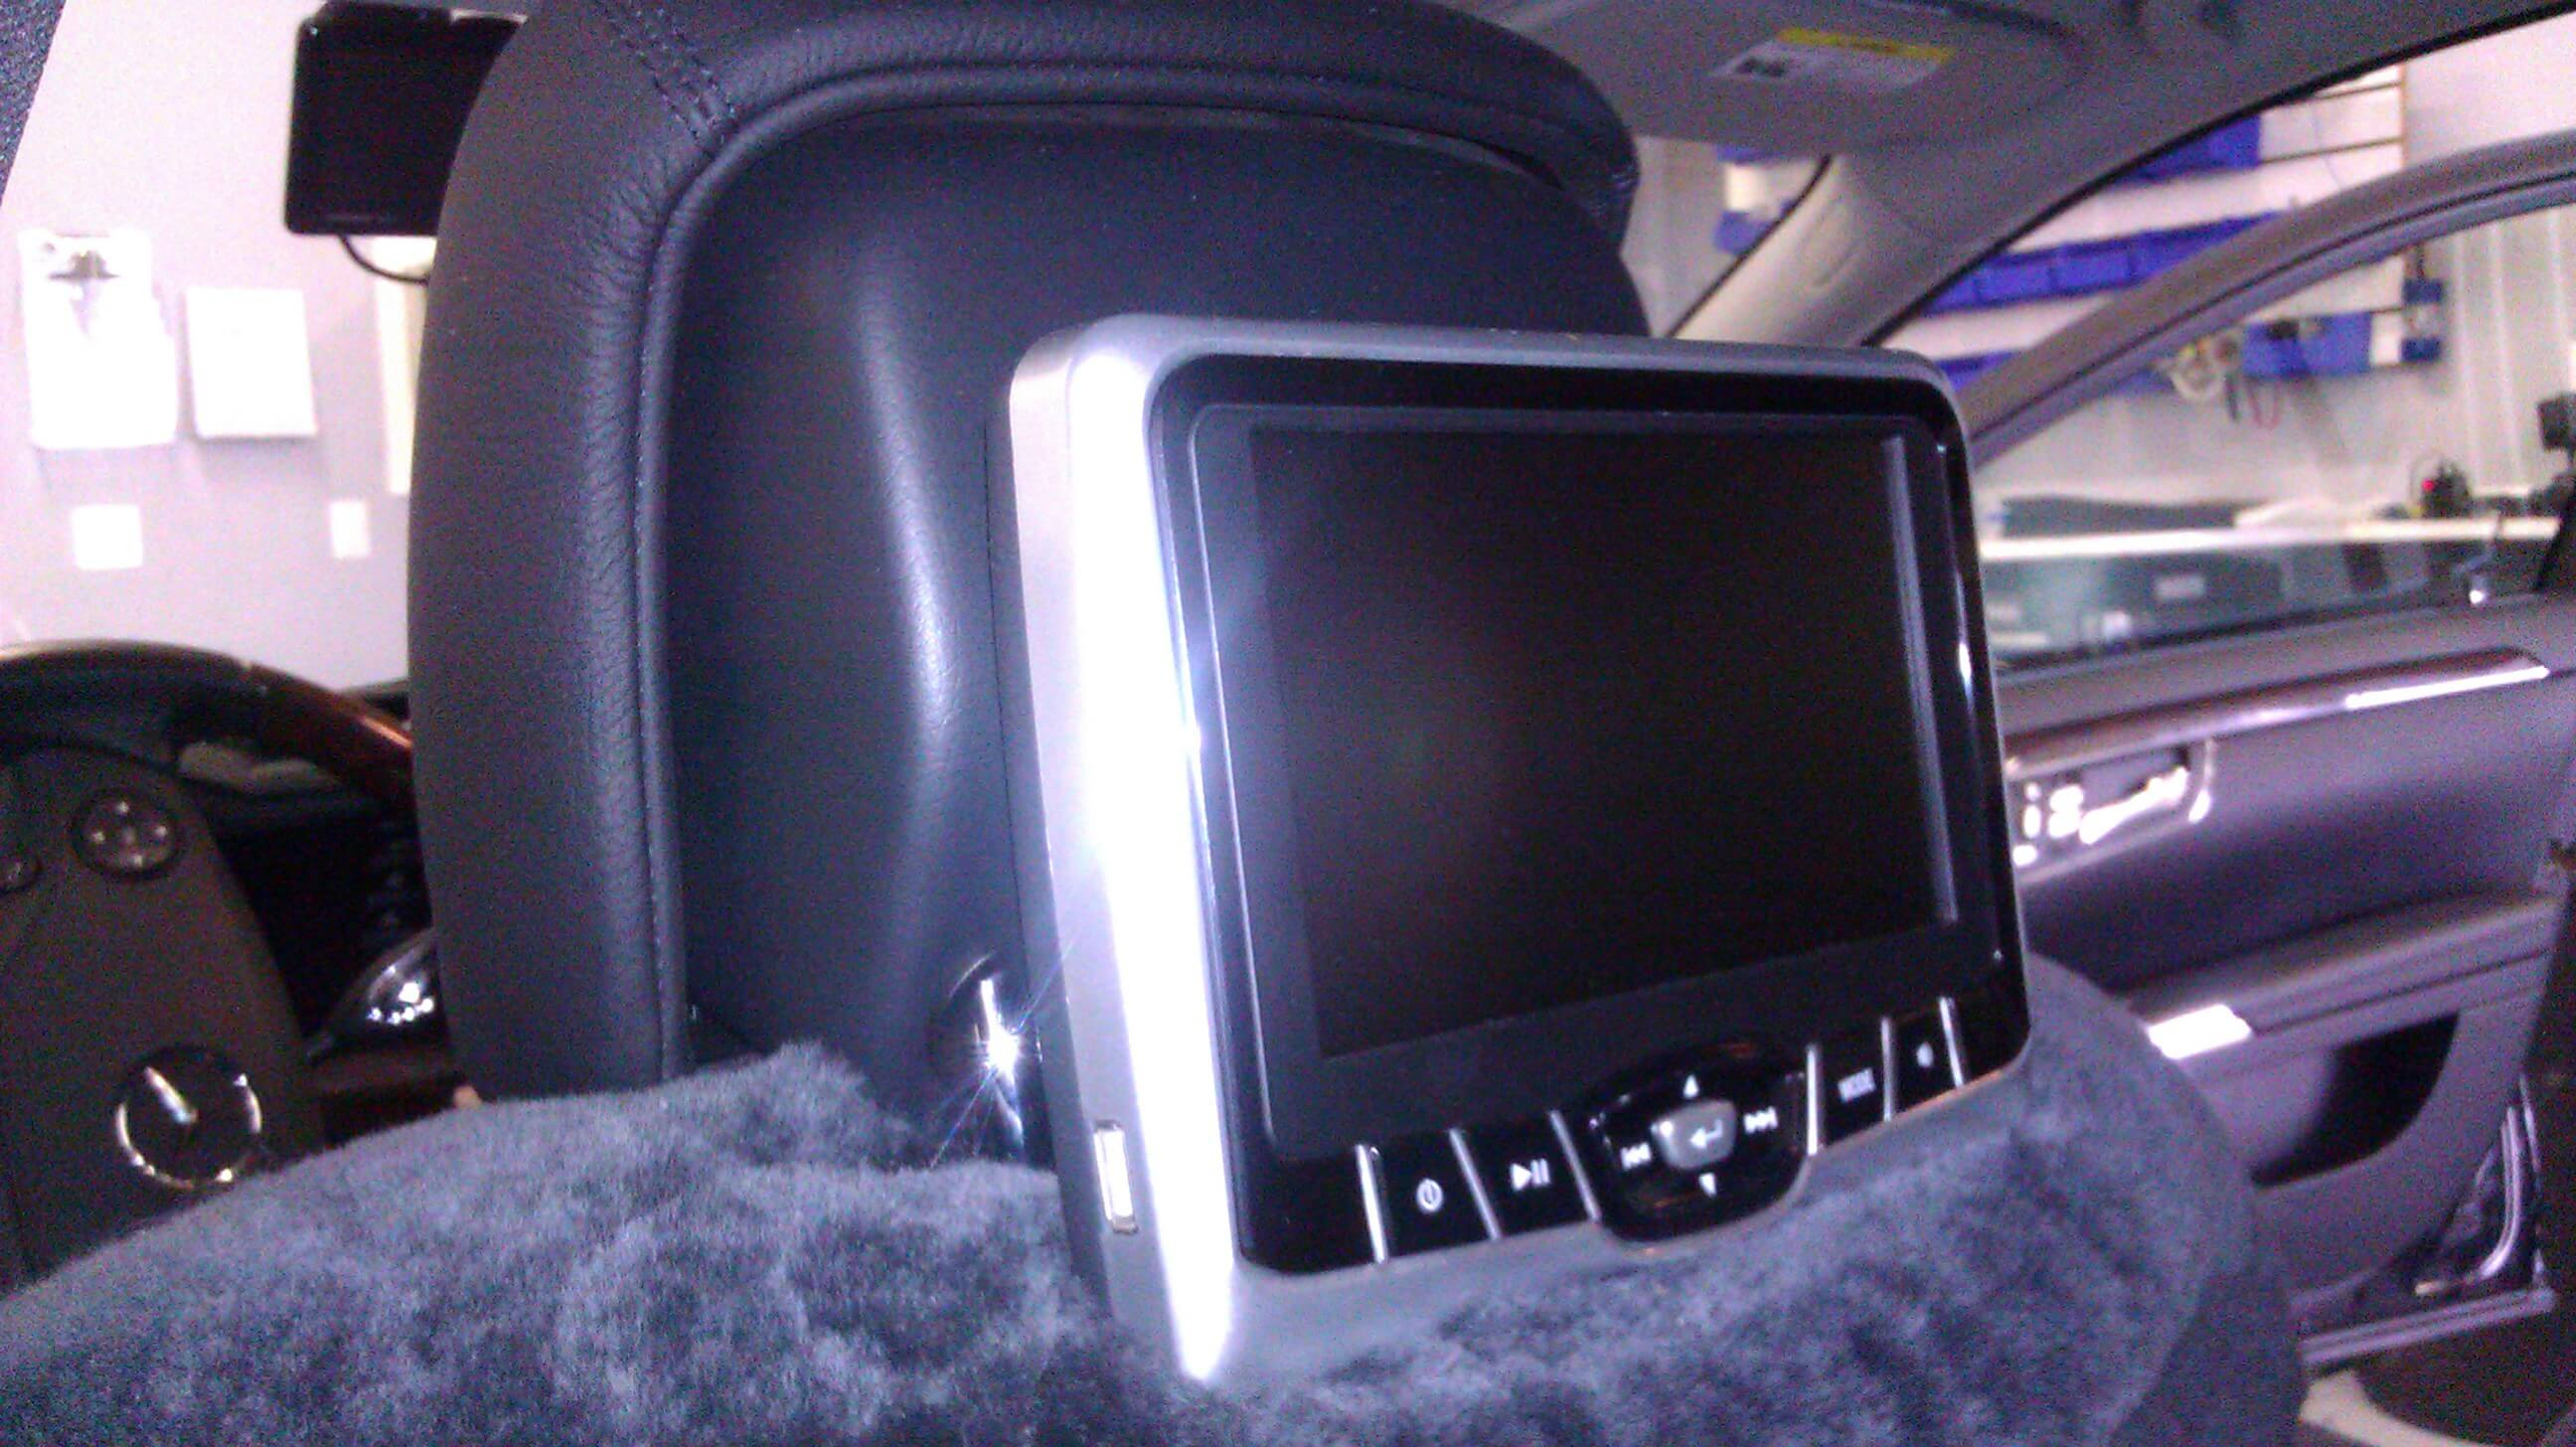 Mercedes Benz Headrest Dvd Player The Remote Starter S550 Gets A Car And Mobile Video